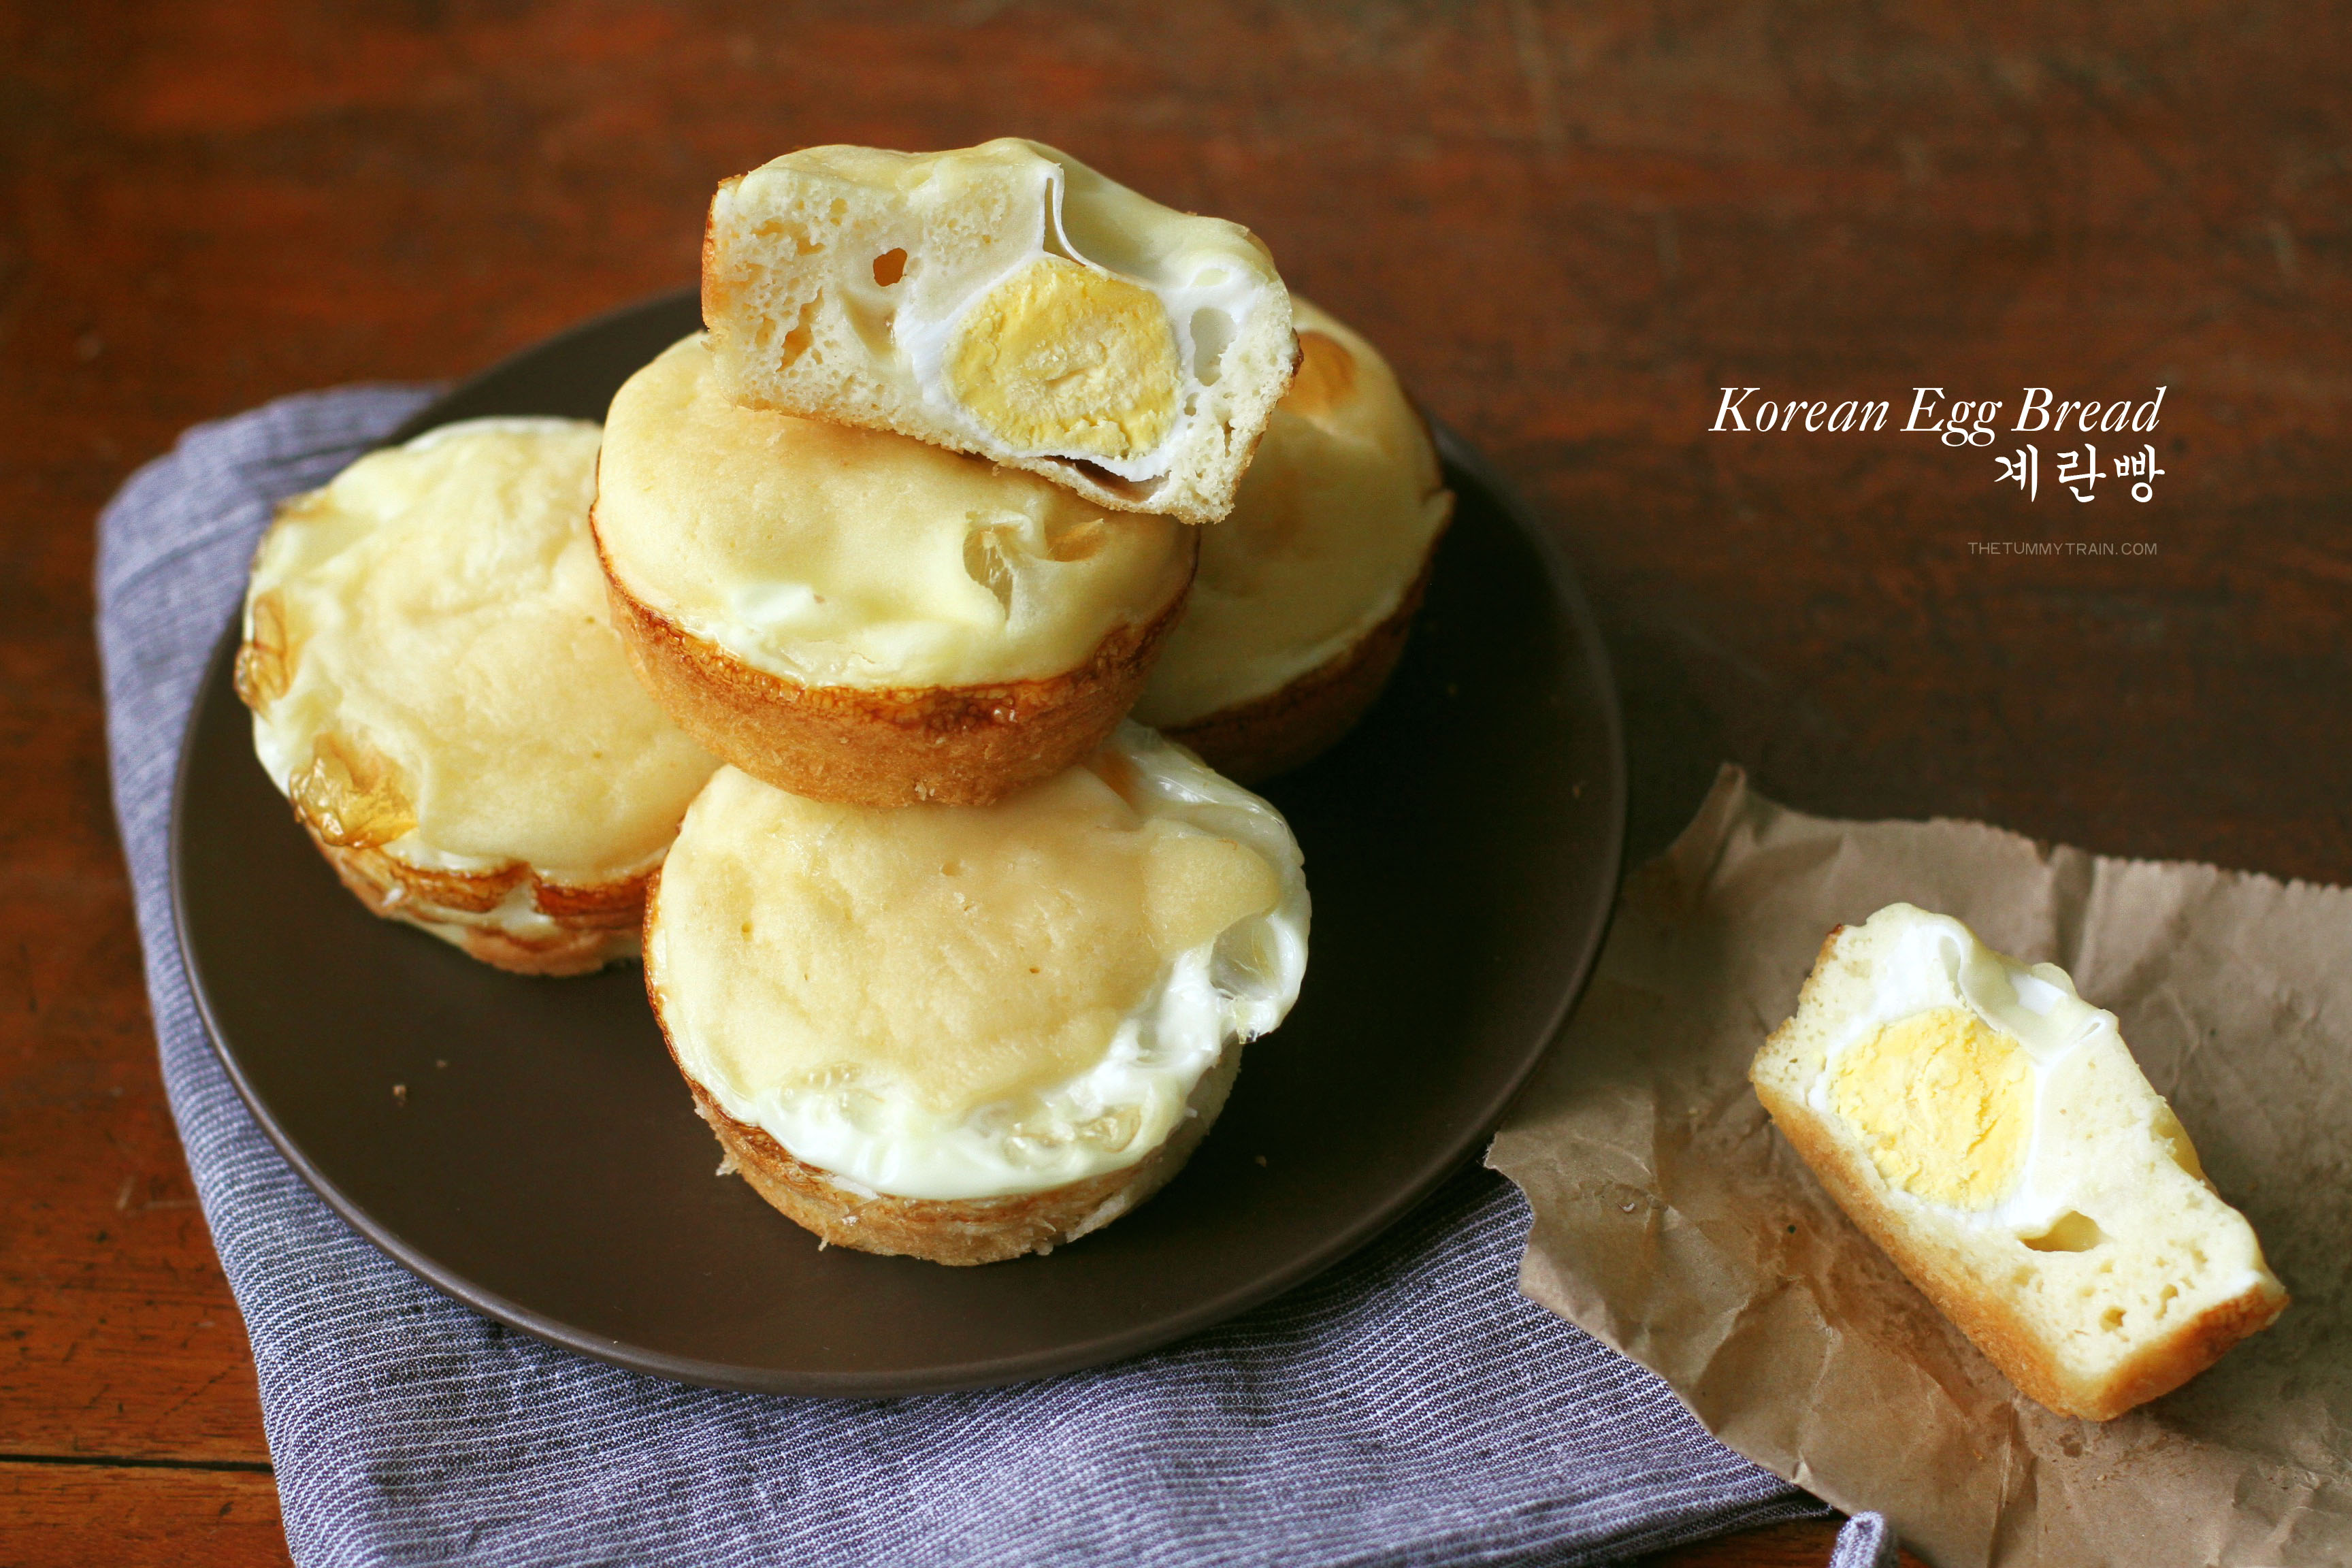 Korean Egg Bread 1 - I wish my mornings were always filled with Korean Egg Bread